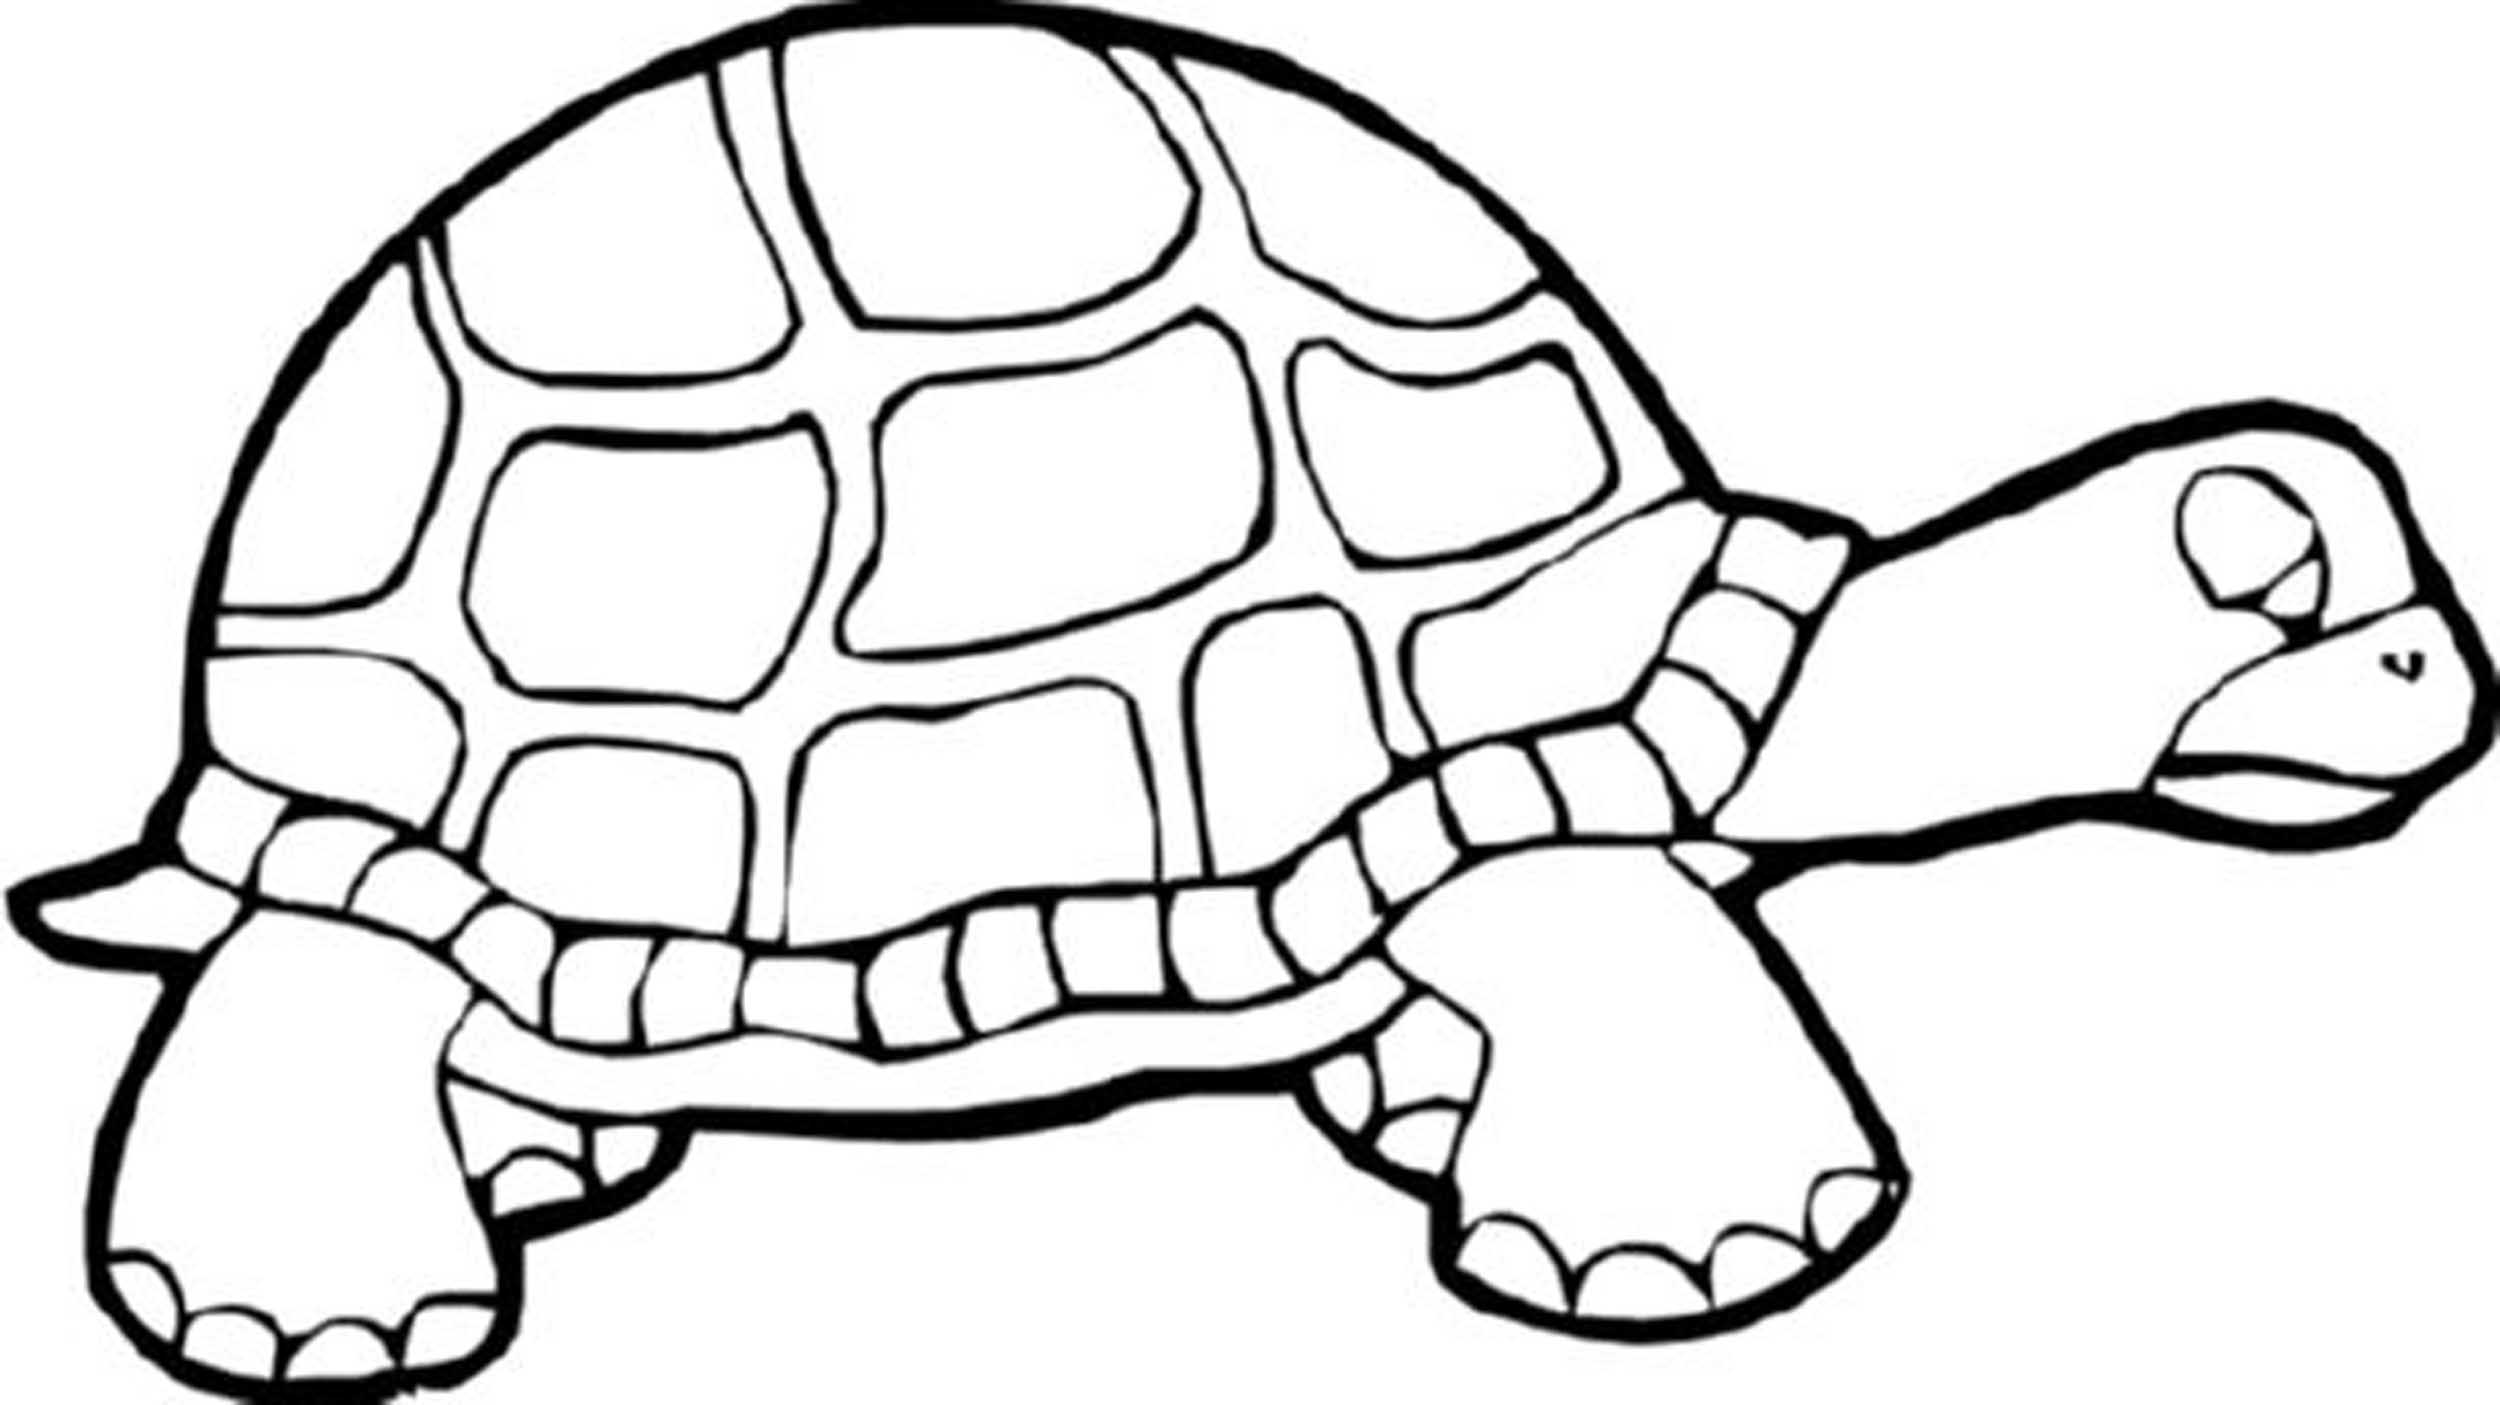 turtle pictures to color print download turtle coloring pages as the to color turtle pictures